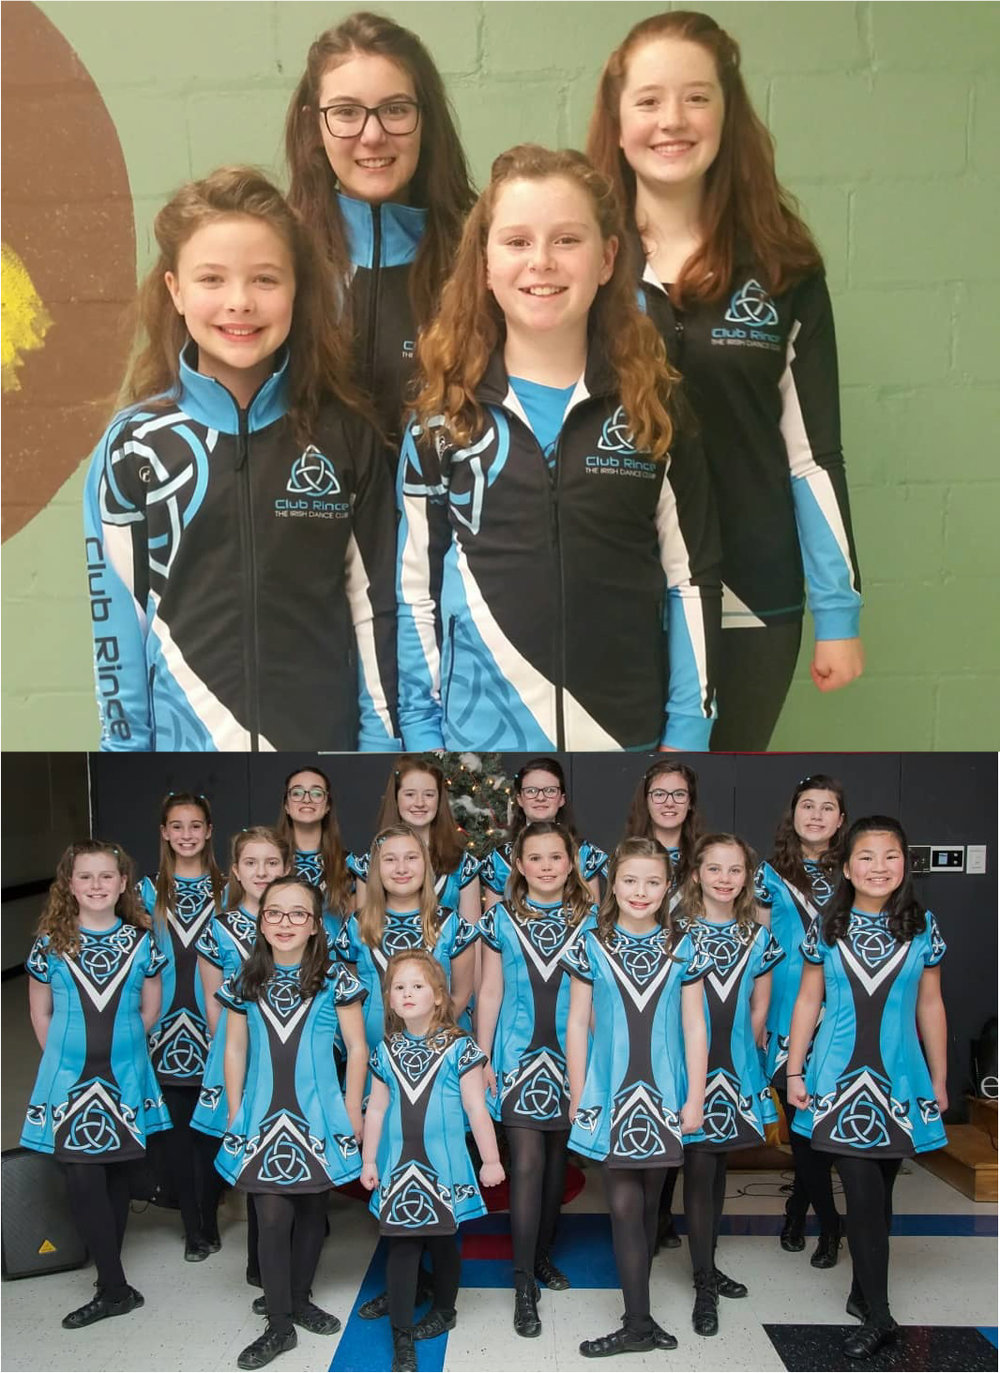 Club Rince, Chester, New Jersey - Absolutely loving our new costumes and tracksuits! Thank you